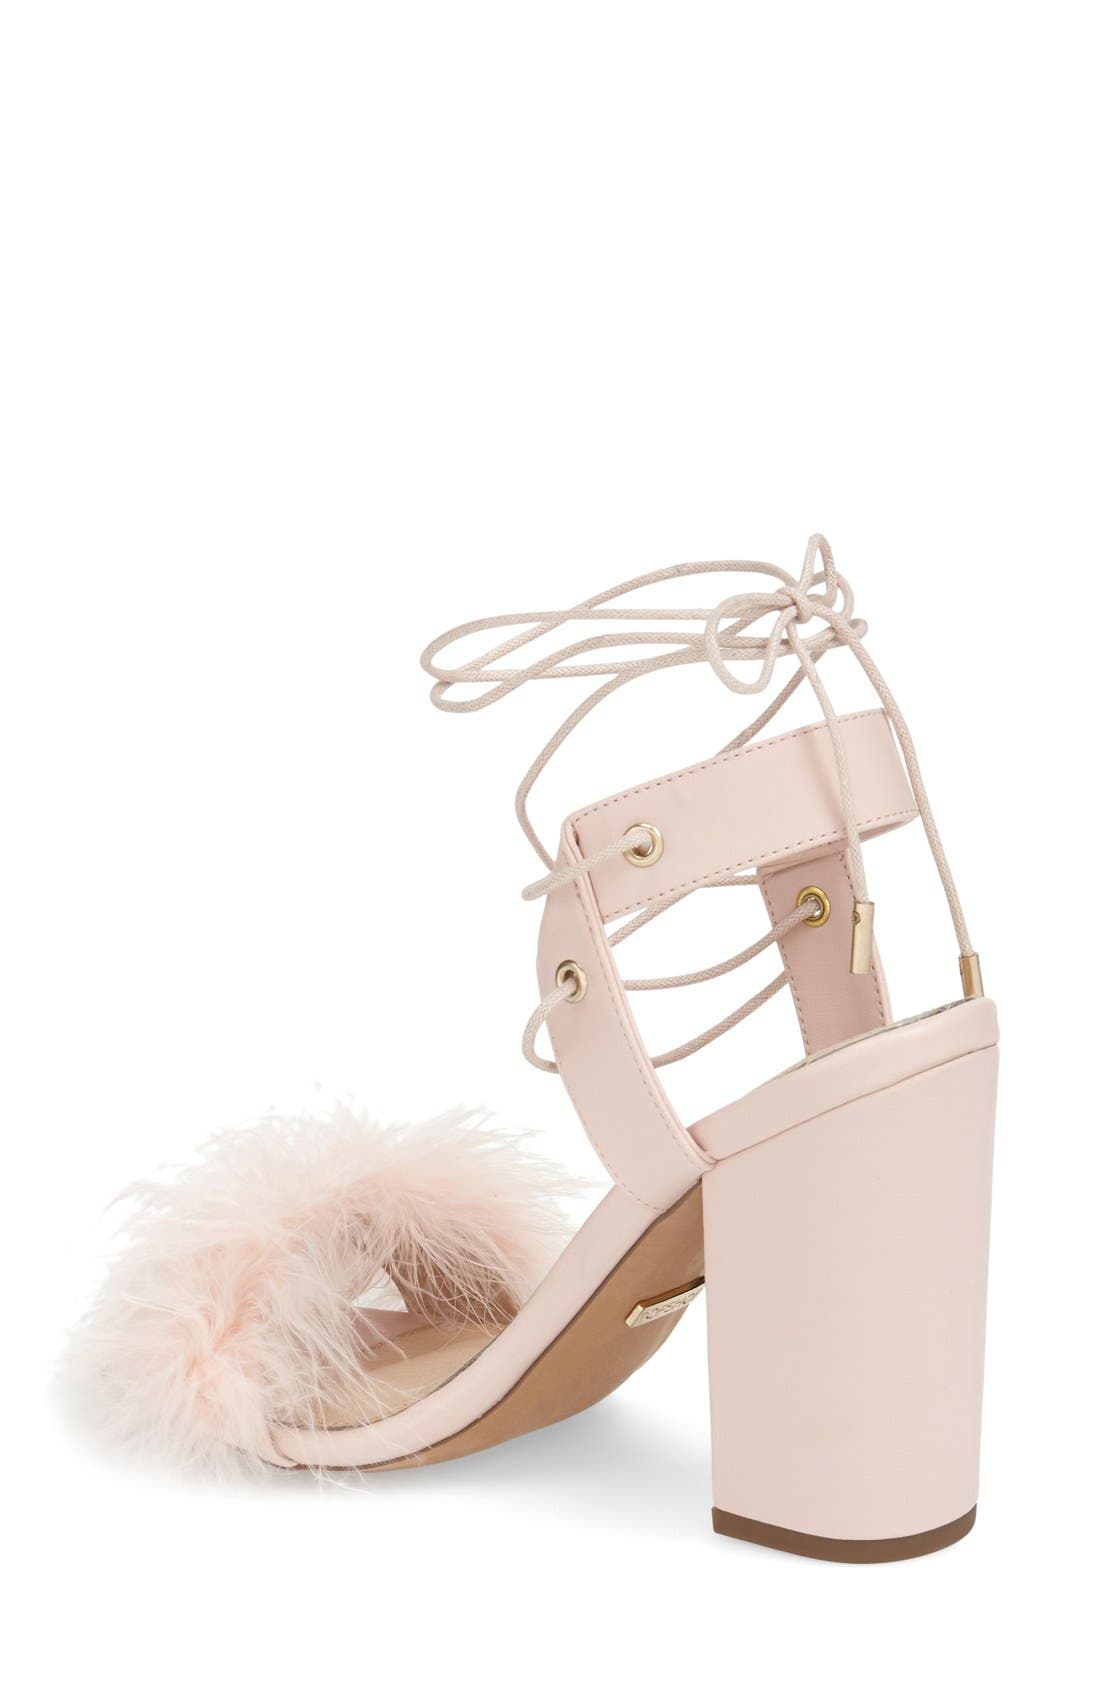 Marabou Feather Lace-Up Sandal,                             Alternate thumbnail 2, color,                             Nude